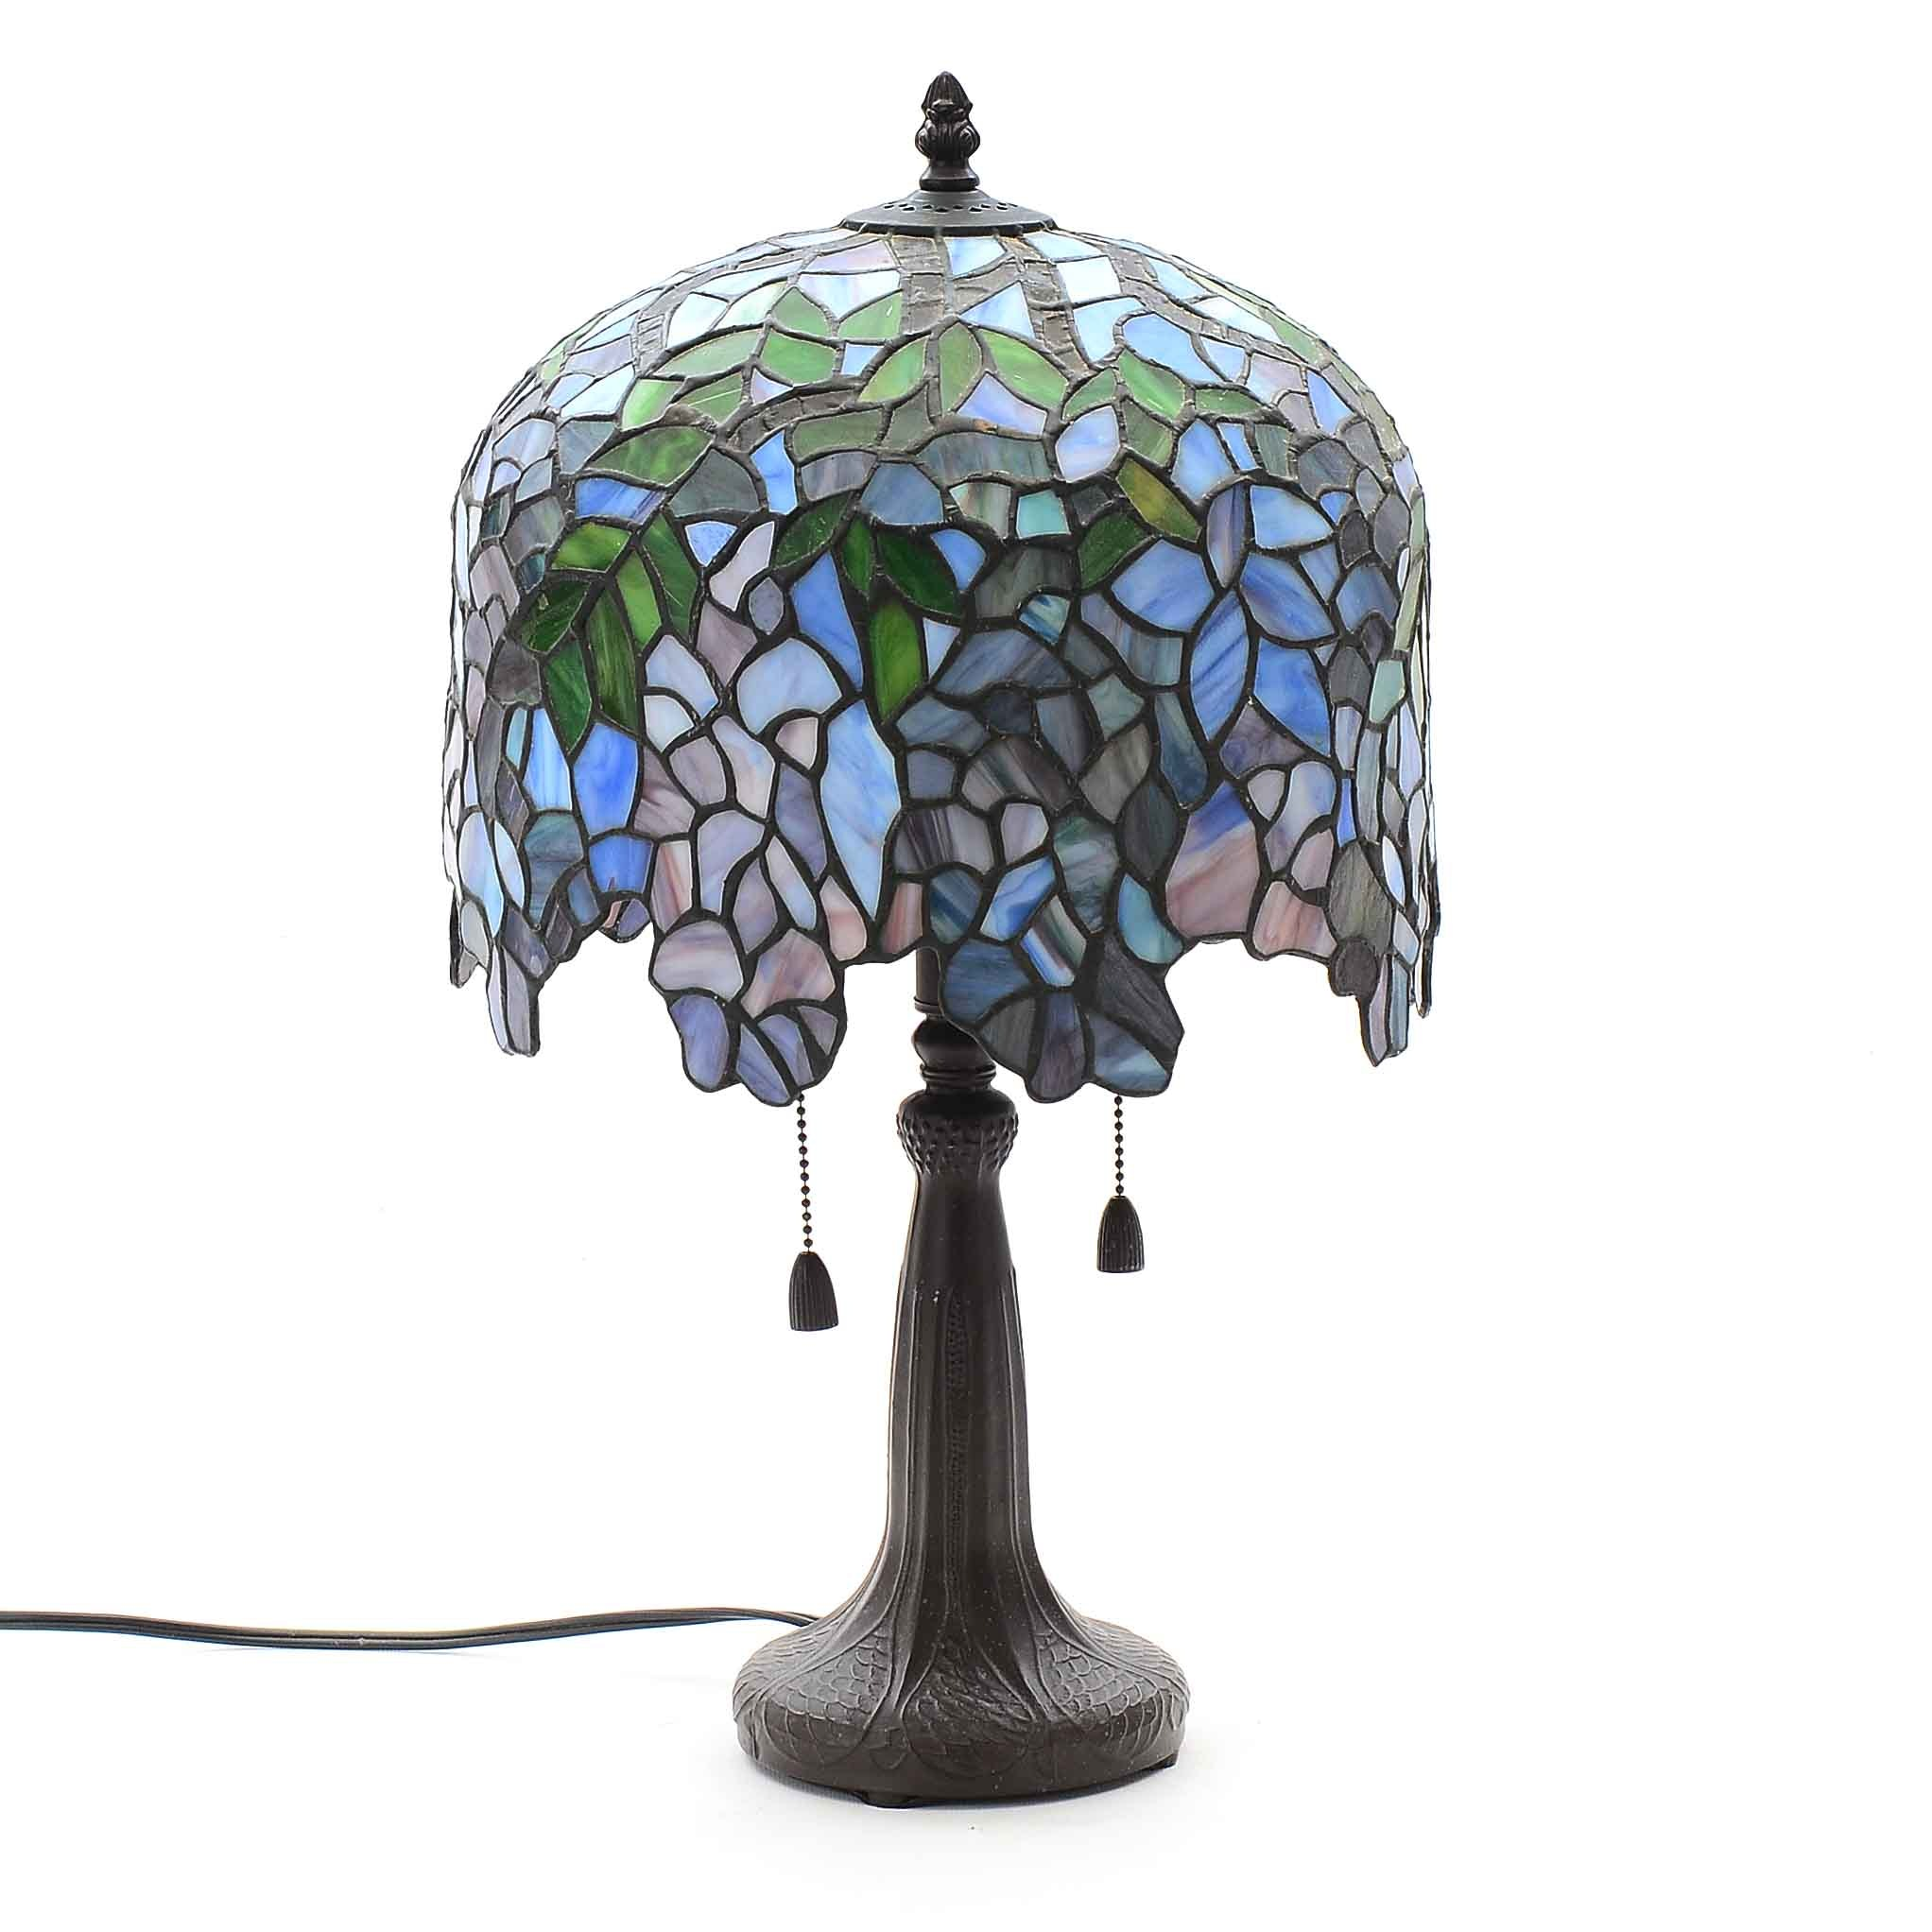 Art Nouveau Lamp With Tiffany Style Stained Glass Shade